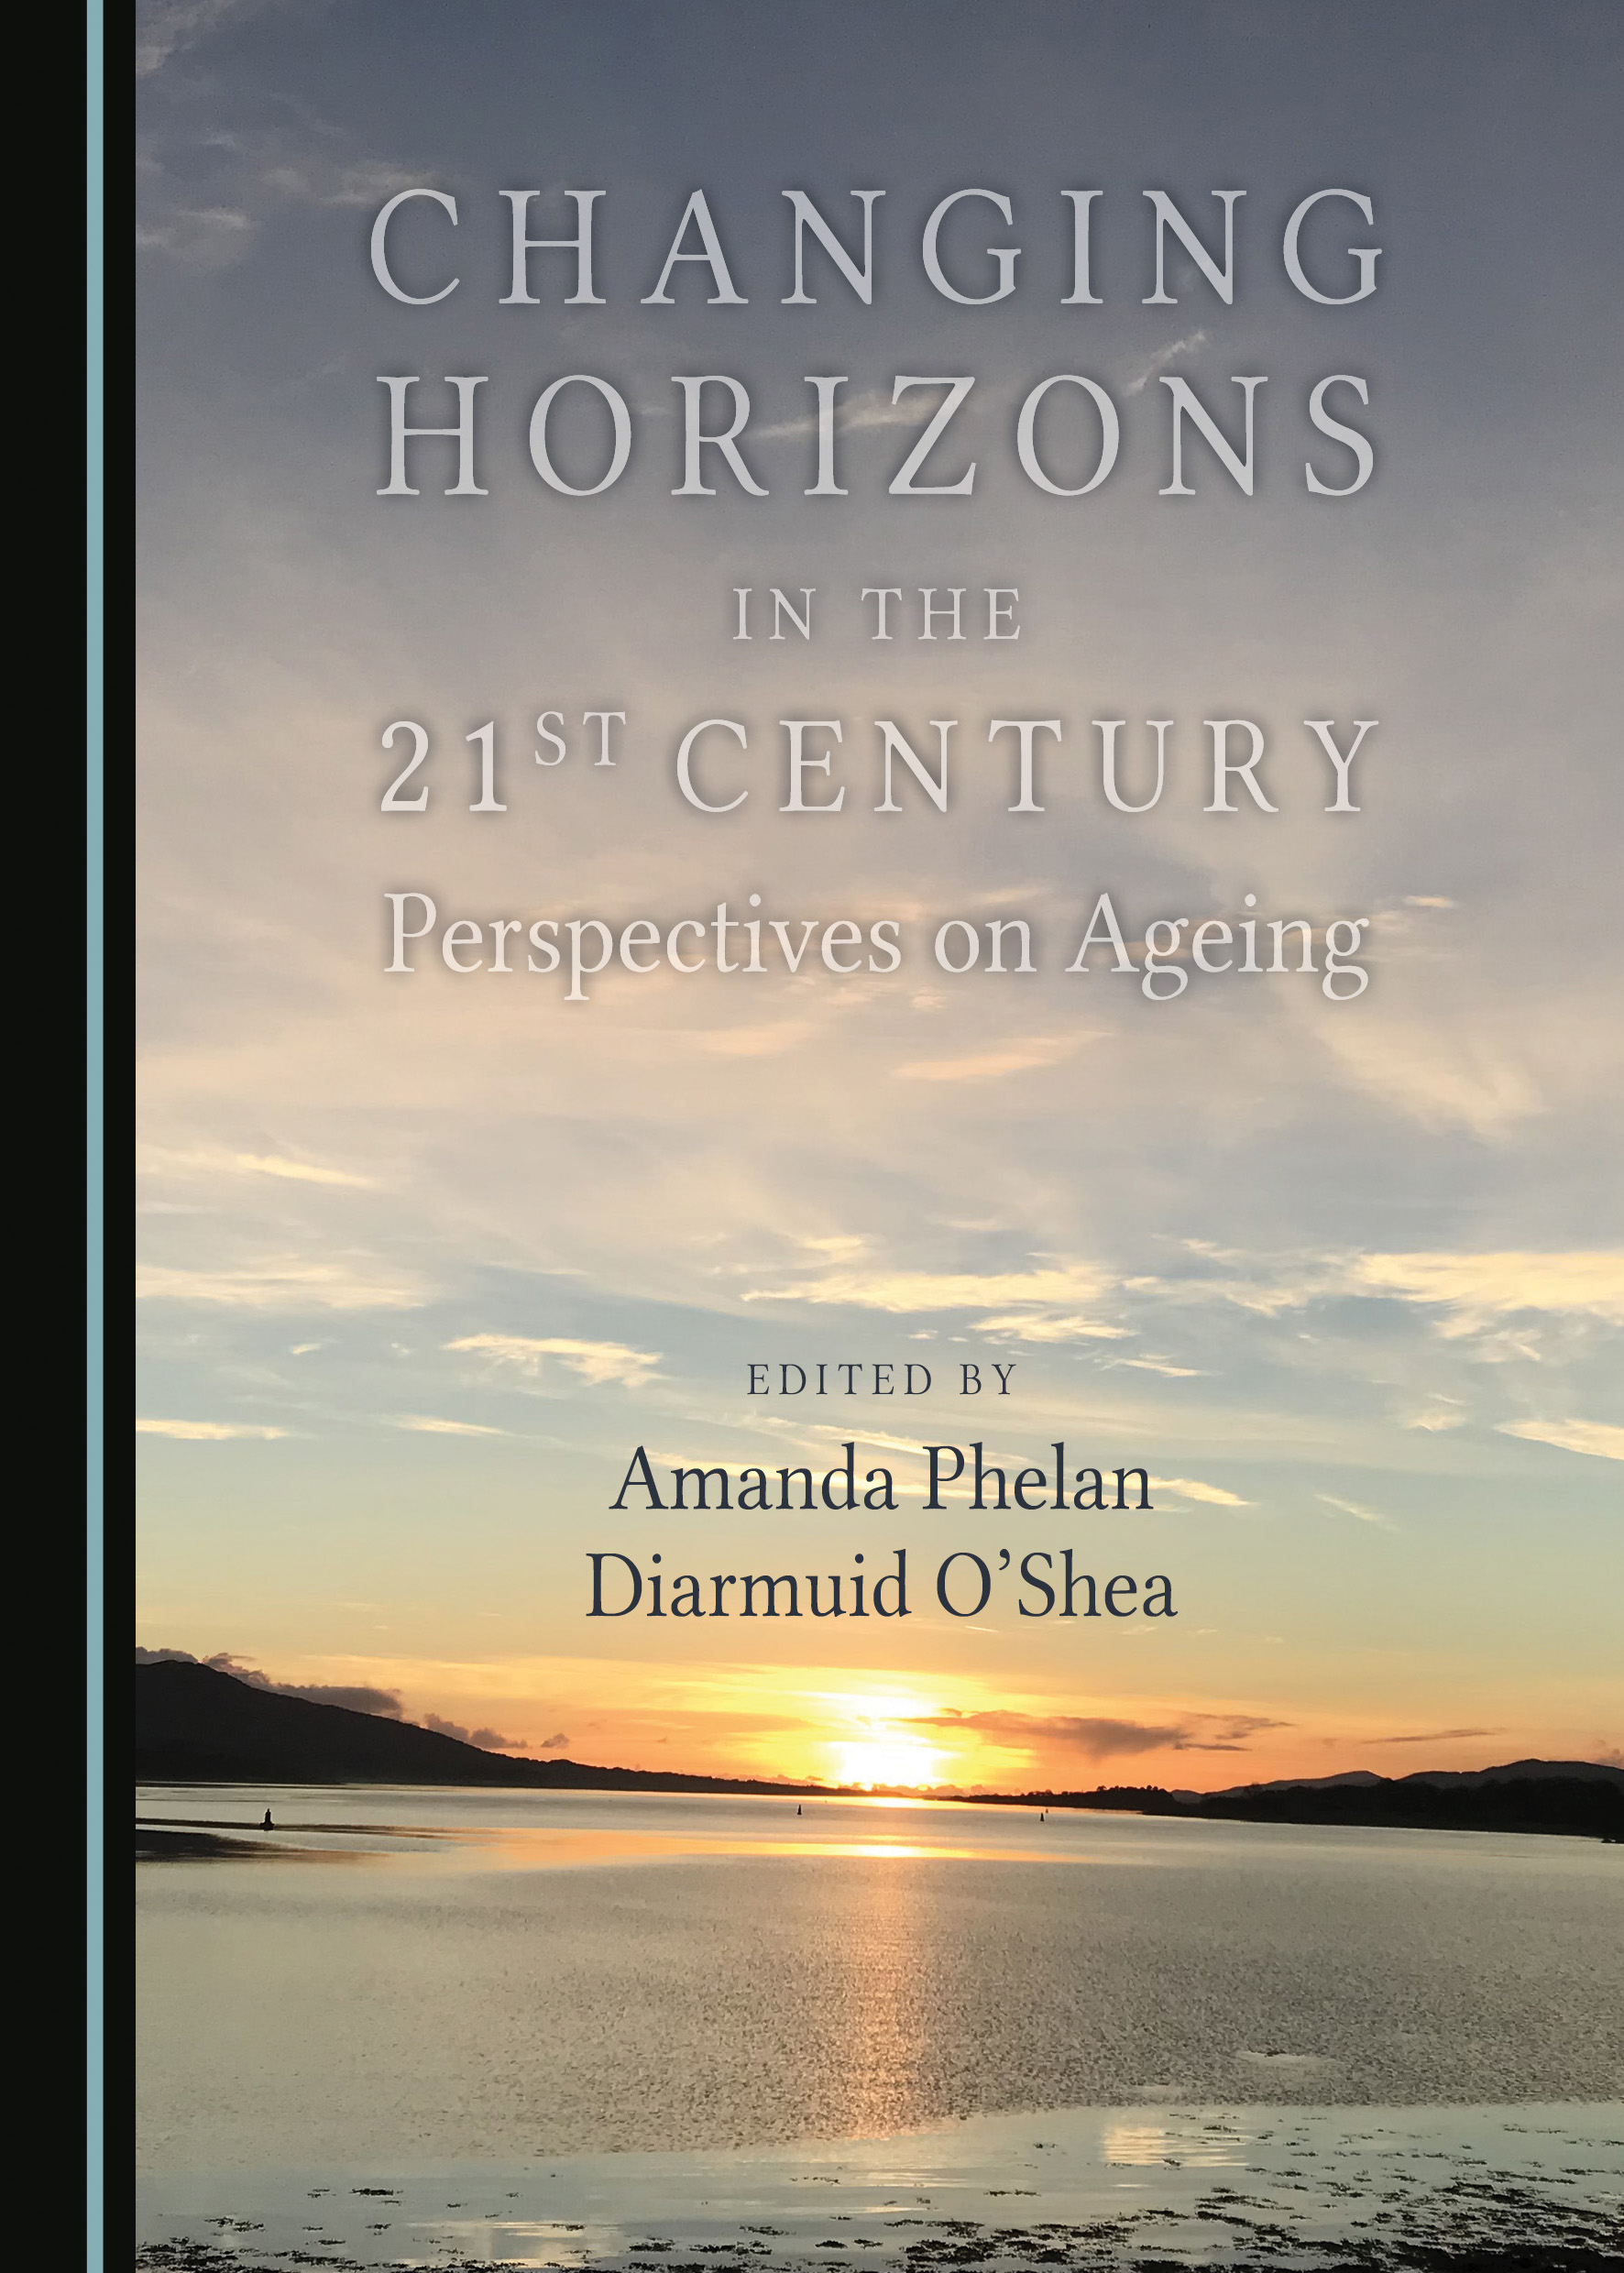 Changing Horizons in the 21st Century: Perspectives on Ageing